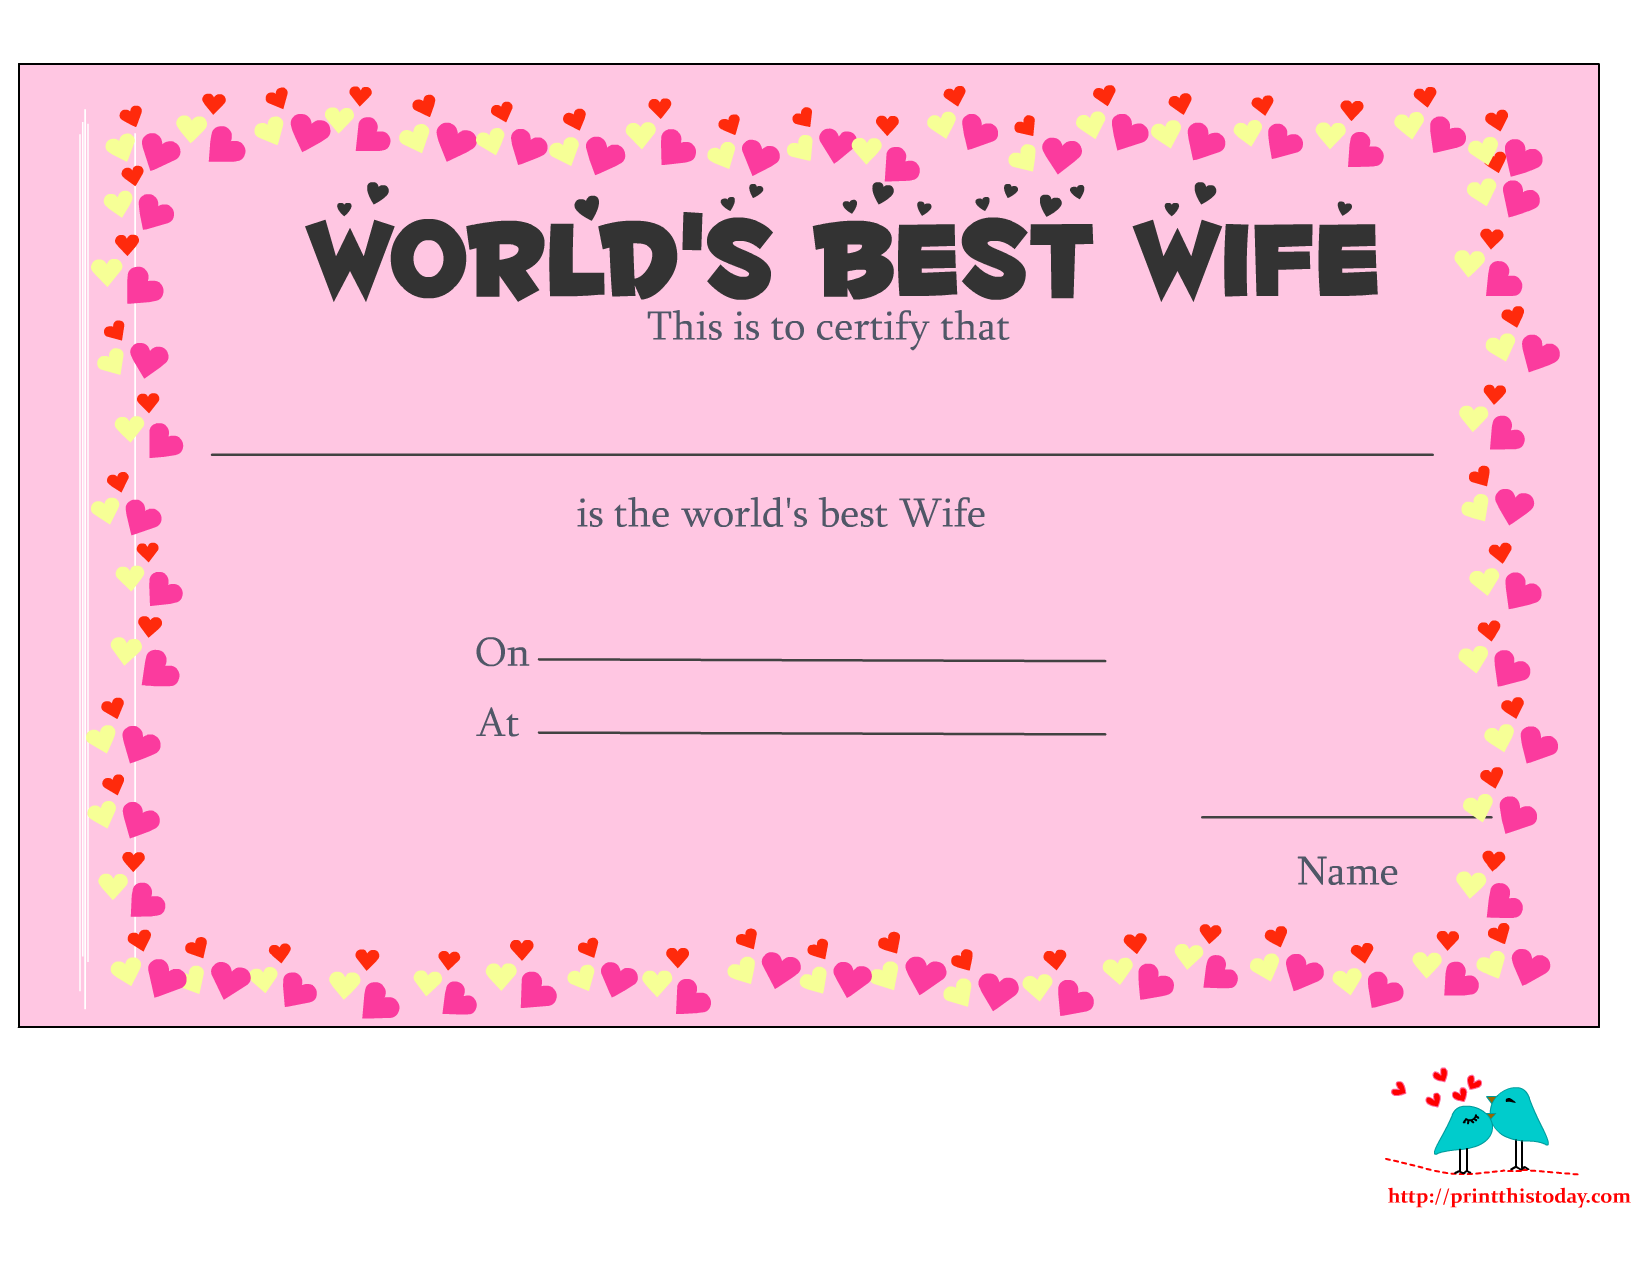 Free printable worlds best wife certificates worlds best wife certificate with hearts yelopaper Choice Image